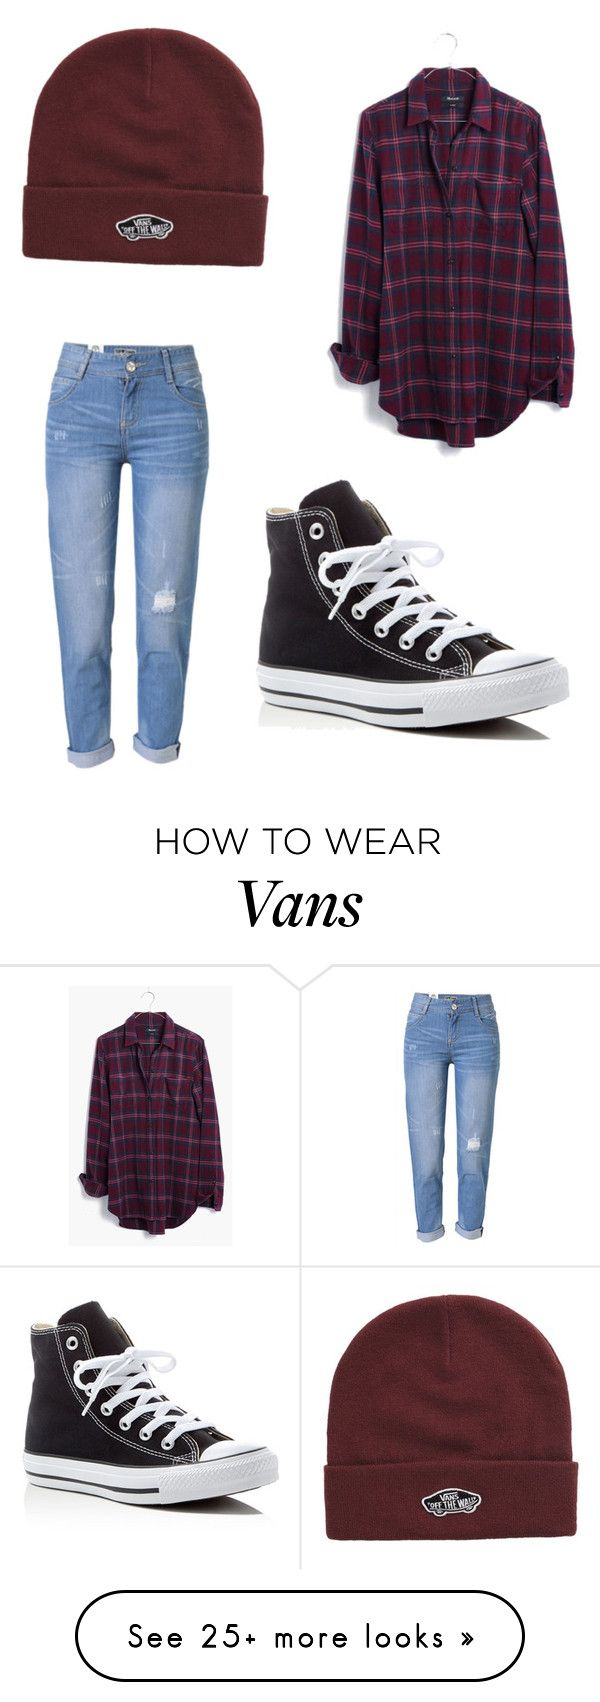 """""""tomboy look!"""" by ayeitspaige on Polyvore featuring WithChic, Madewell, Converse and Vans"""